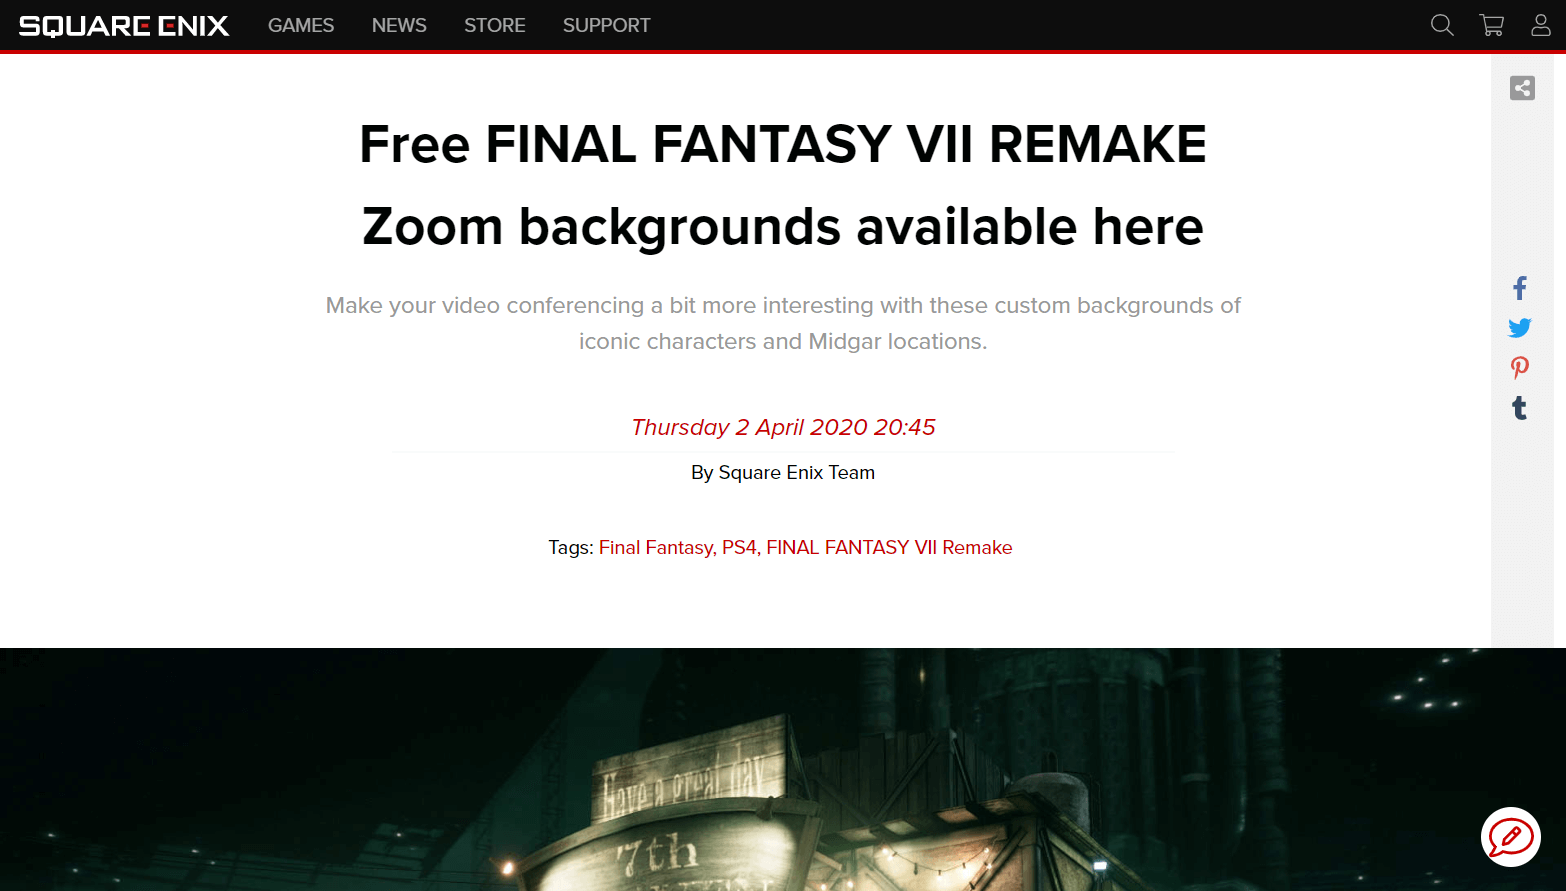 Free FINAL FANTASY VII REMAKE Zoom backgrounds available to download | Square Enix Blog